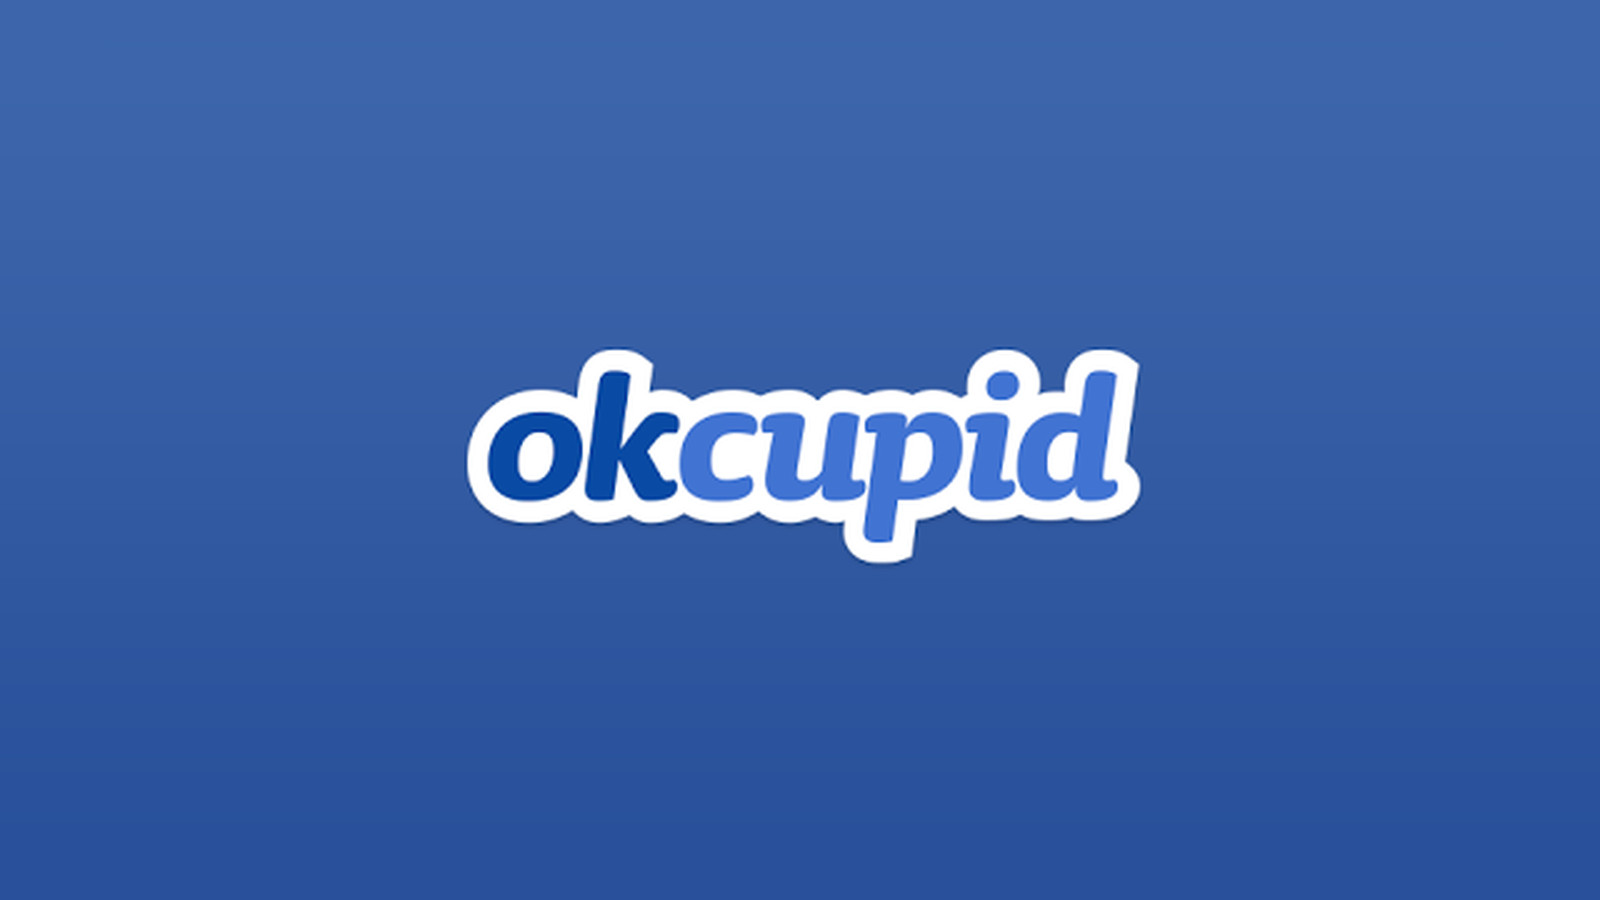 Okcupid dating site in Perth